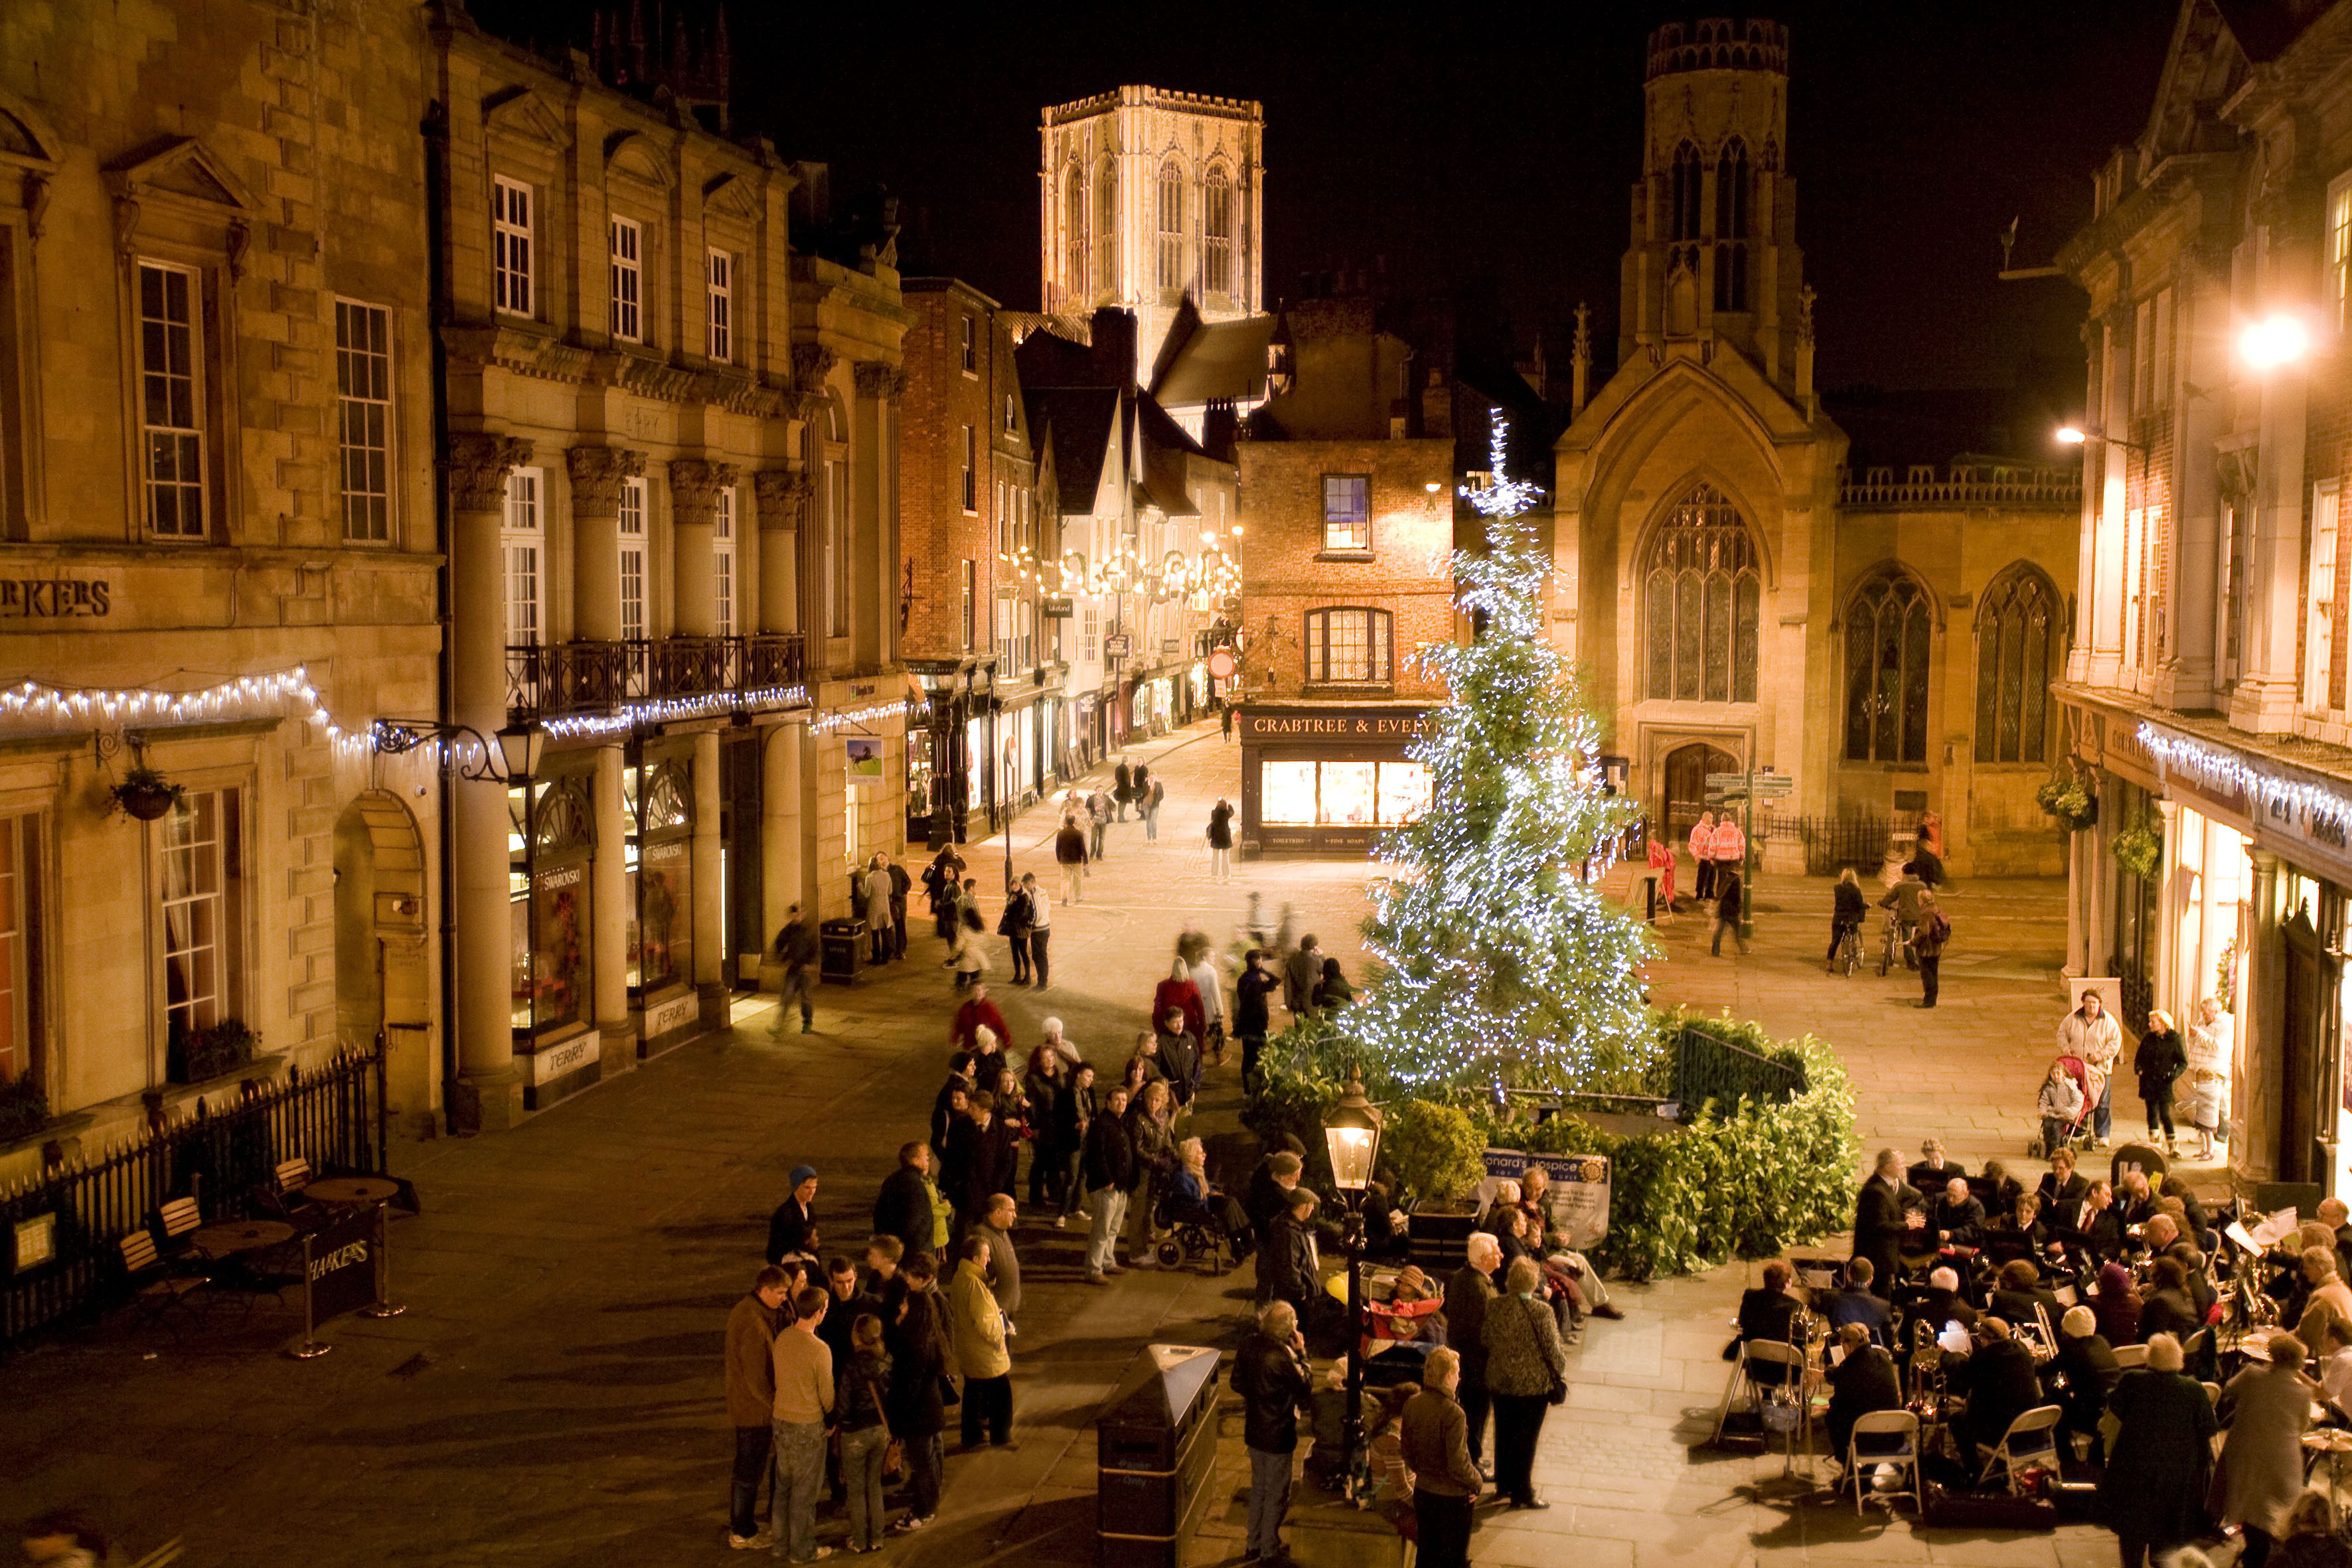 st_helen_s_square_at_christmas_taken_from_the_mansion_house.jpg